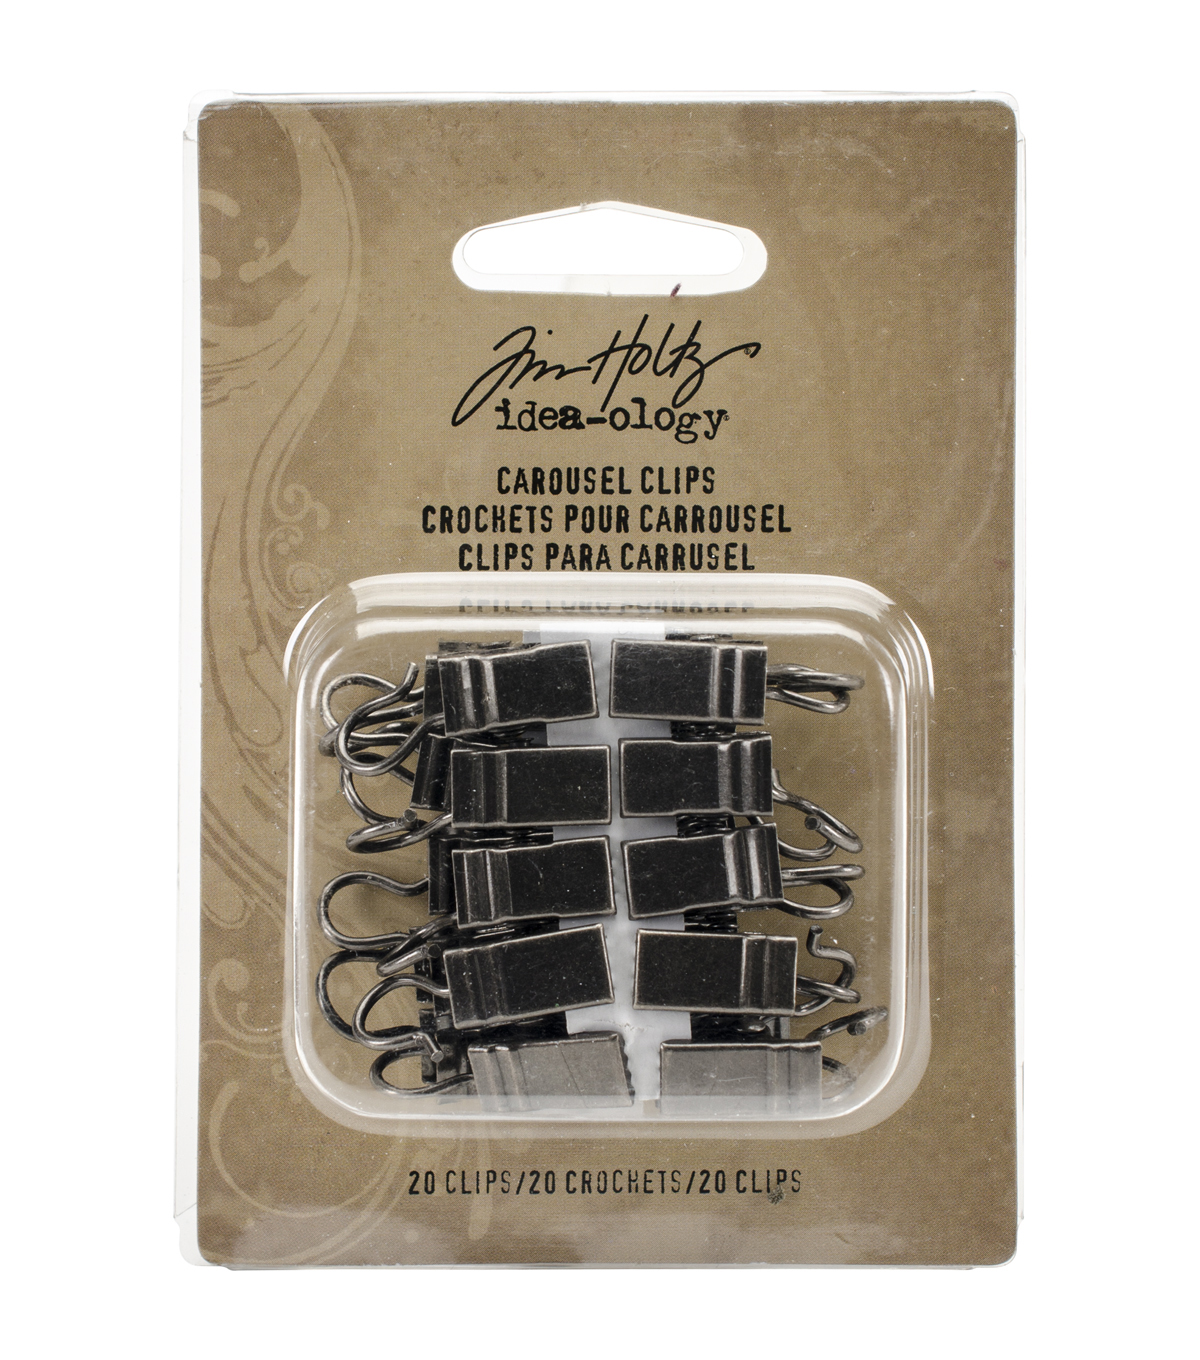 Tim Holtz - Advantus Idea-Ology Carousel Clips